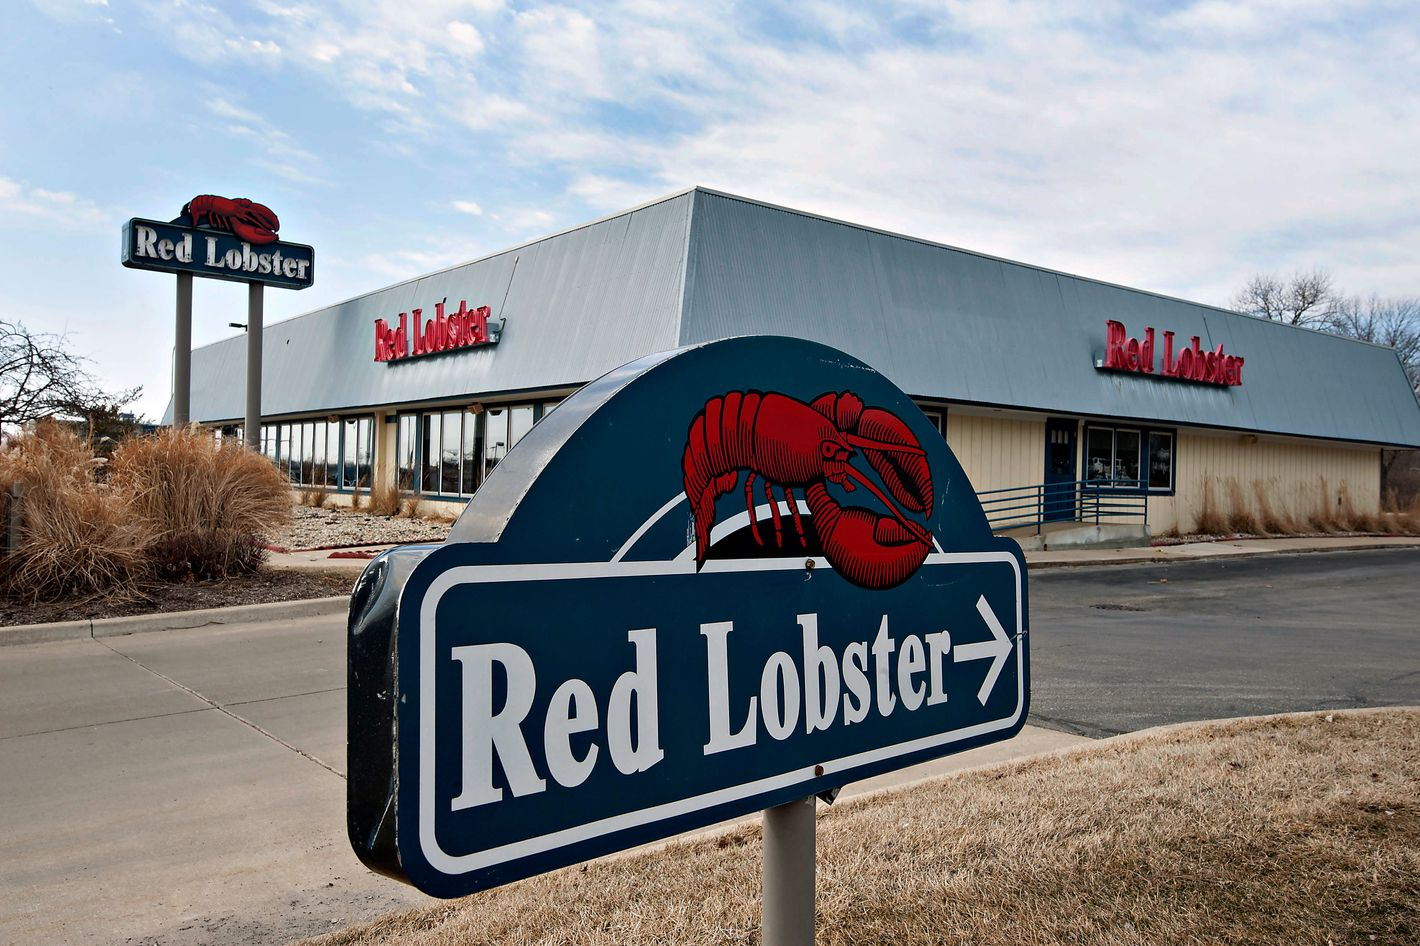 Time to put some crustaceans up to pay down some debt.